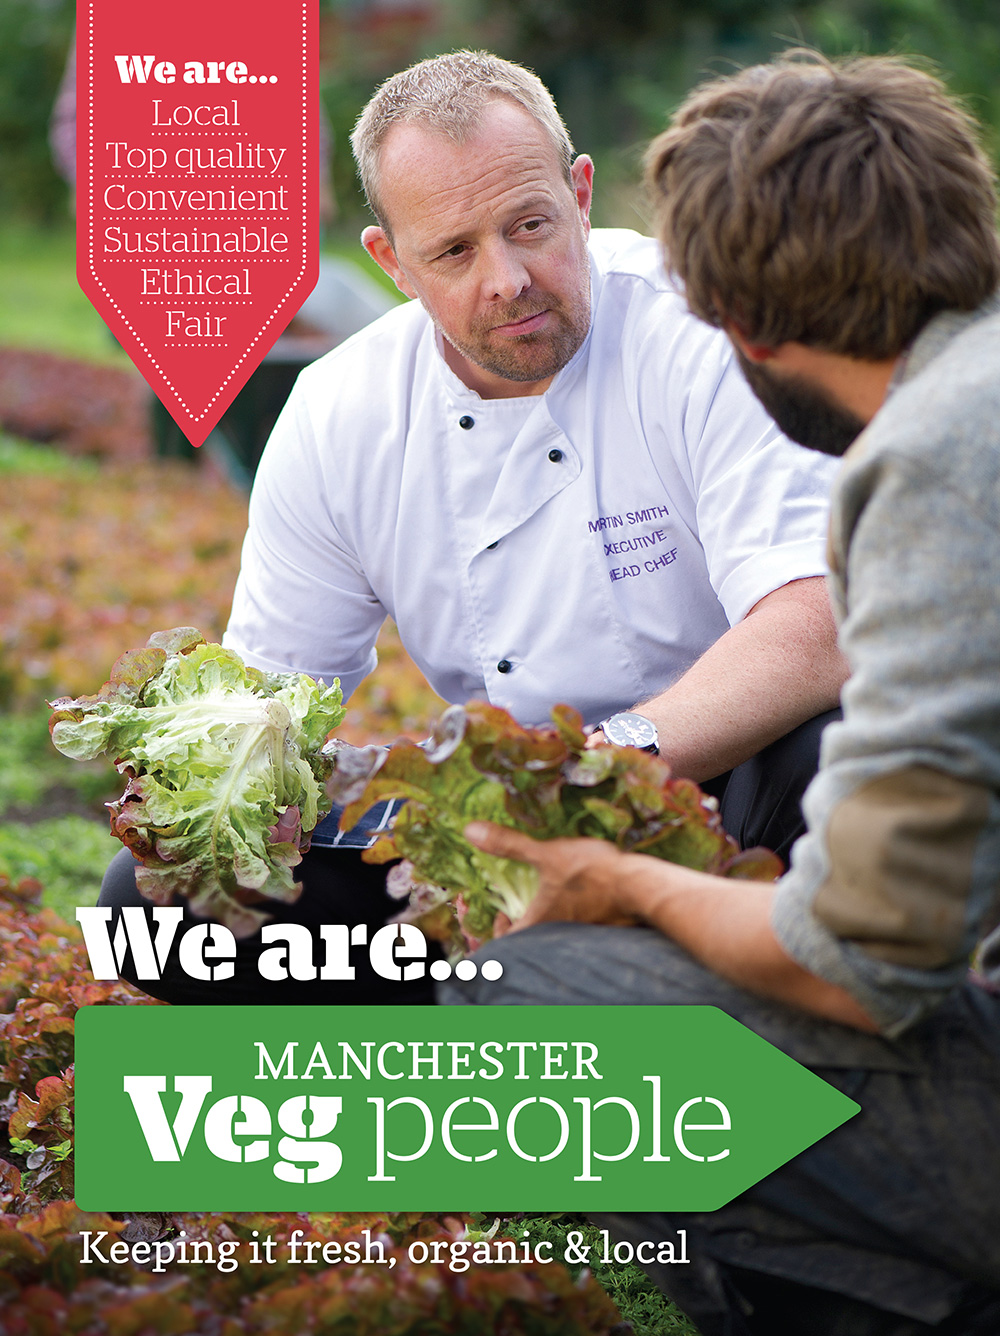 veg people brochure cover